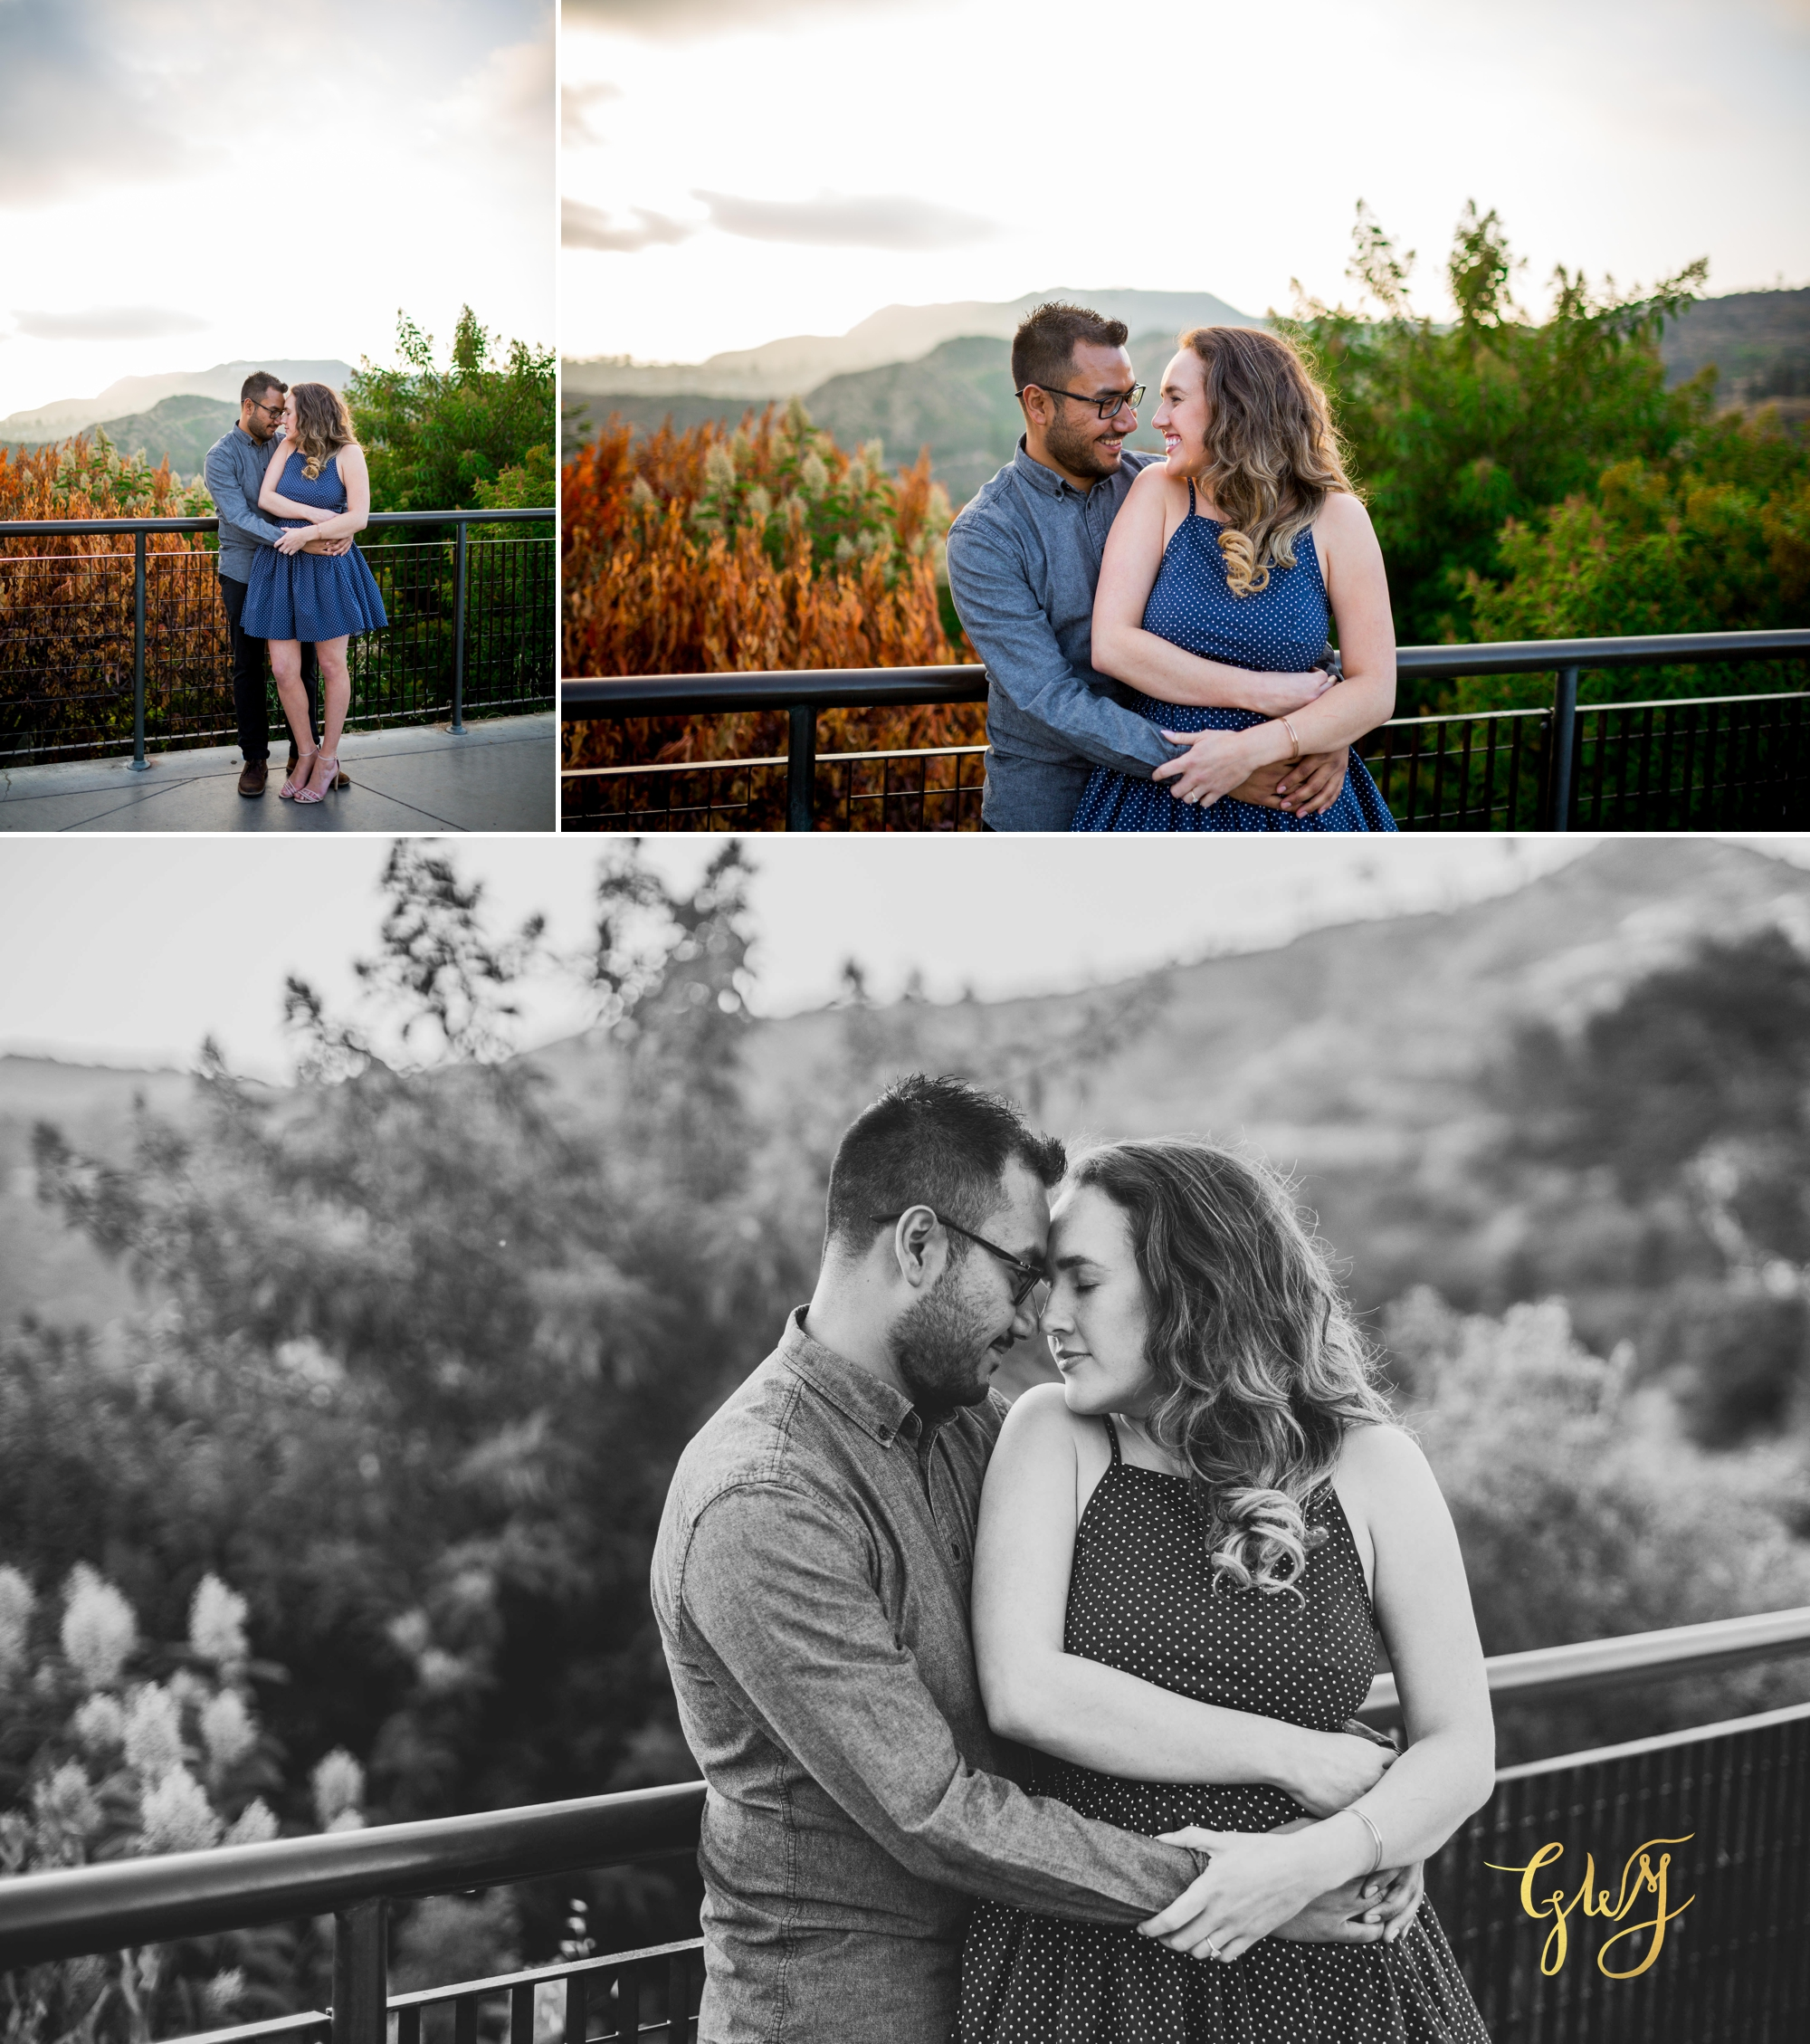 Emily + Gilbert's Griffith Observatory LA Dreamy Sunset Engagement Session by Glass Woods Media 10.jpg